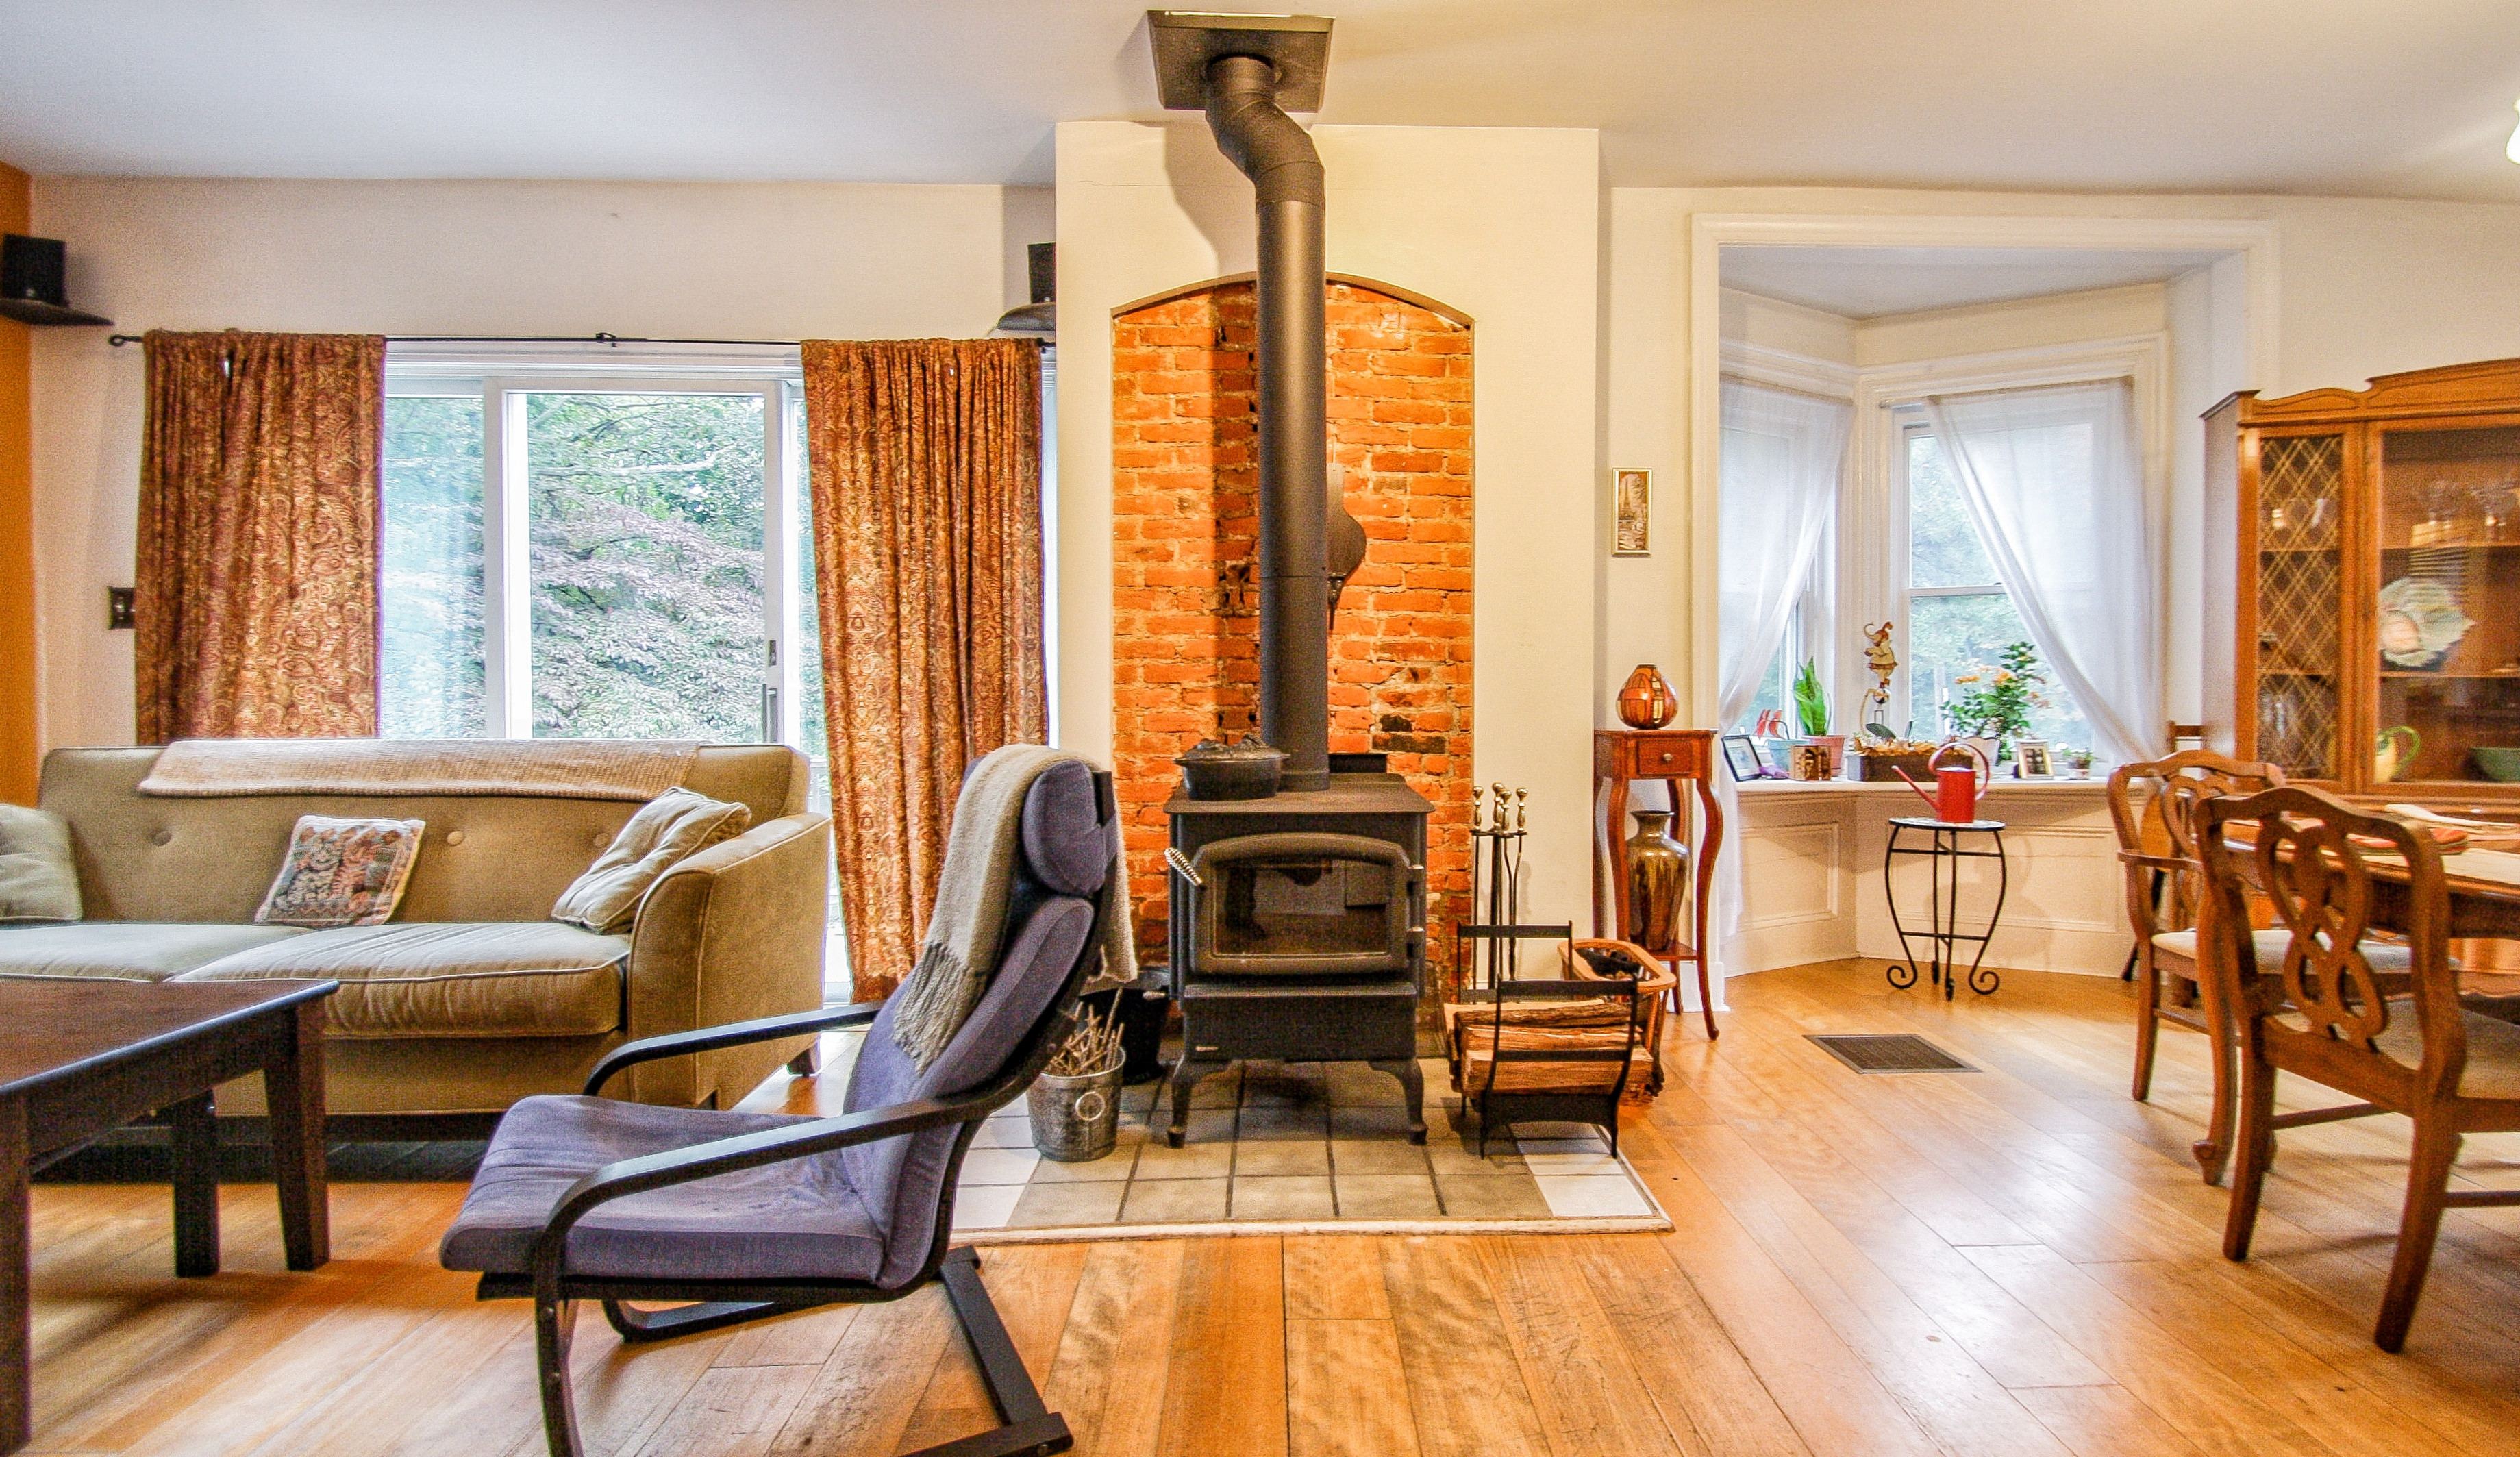 universal hardwood flooring toronto of philadelphia homes neighborhoods architecture and real estate in live in a dreamy cottage in glenside for 225k